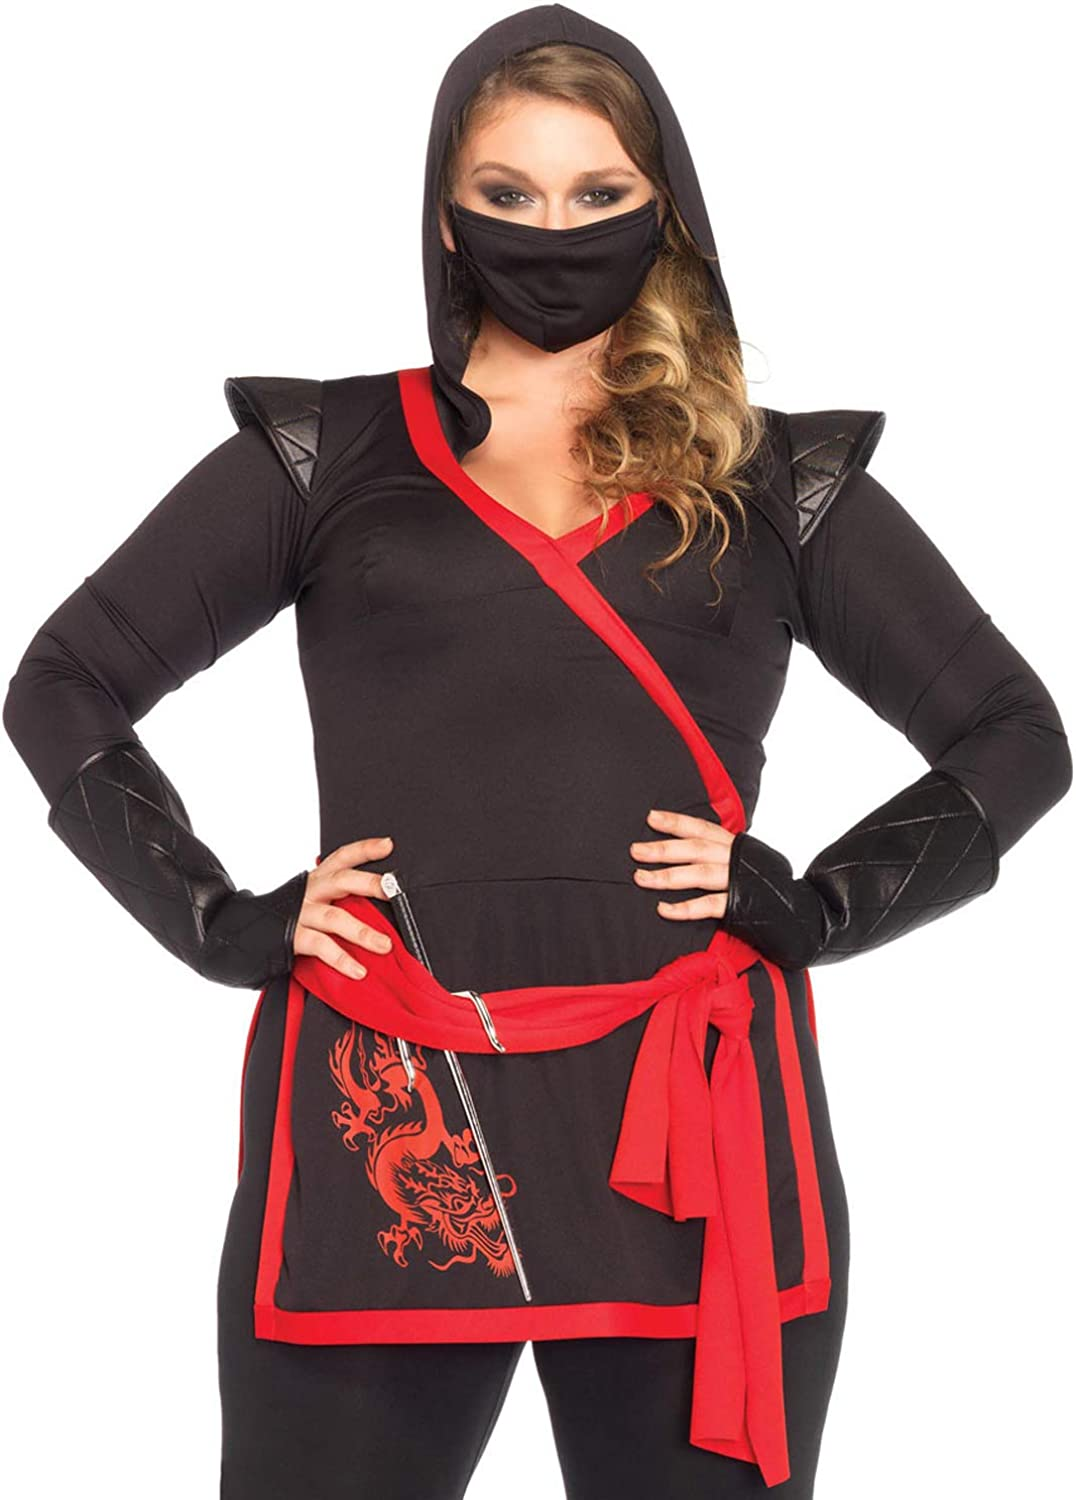 Amazon.com: Leg Avenue Womens Plus-Size 4 Piece Ninja ...